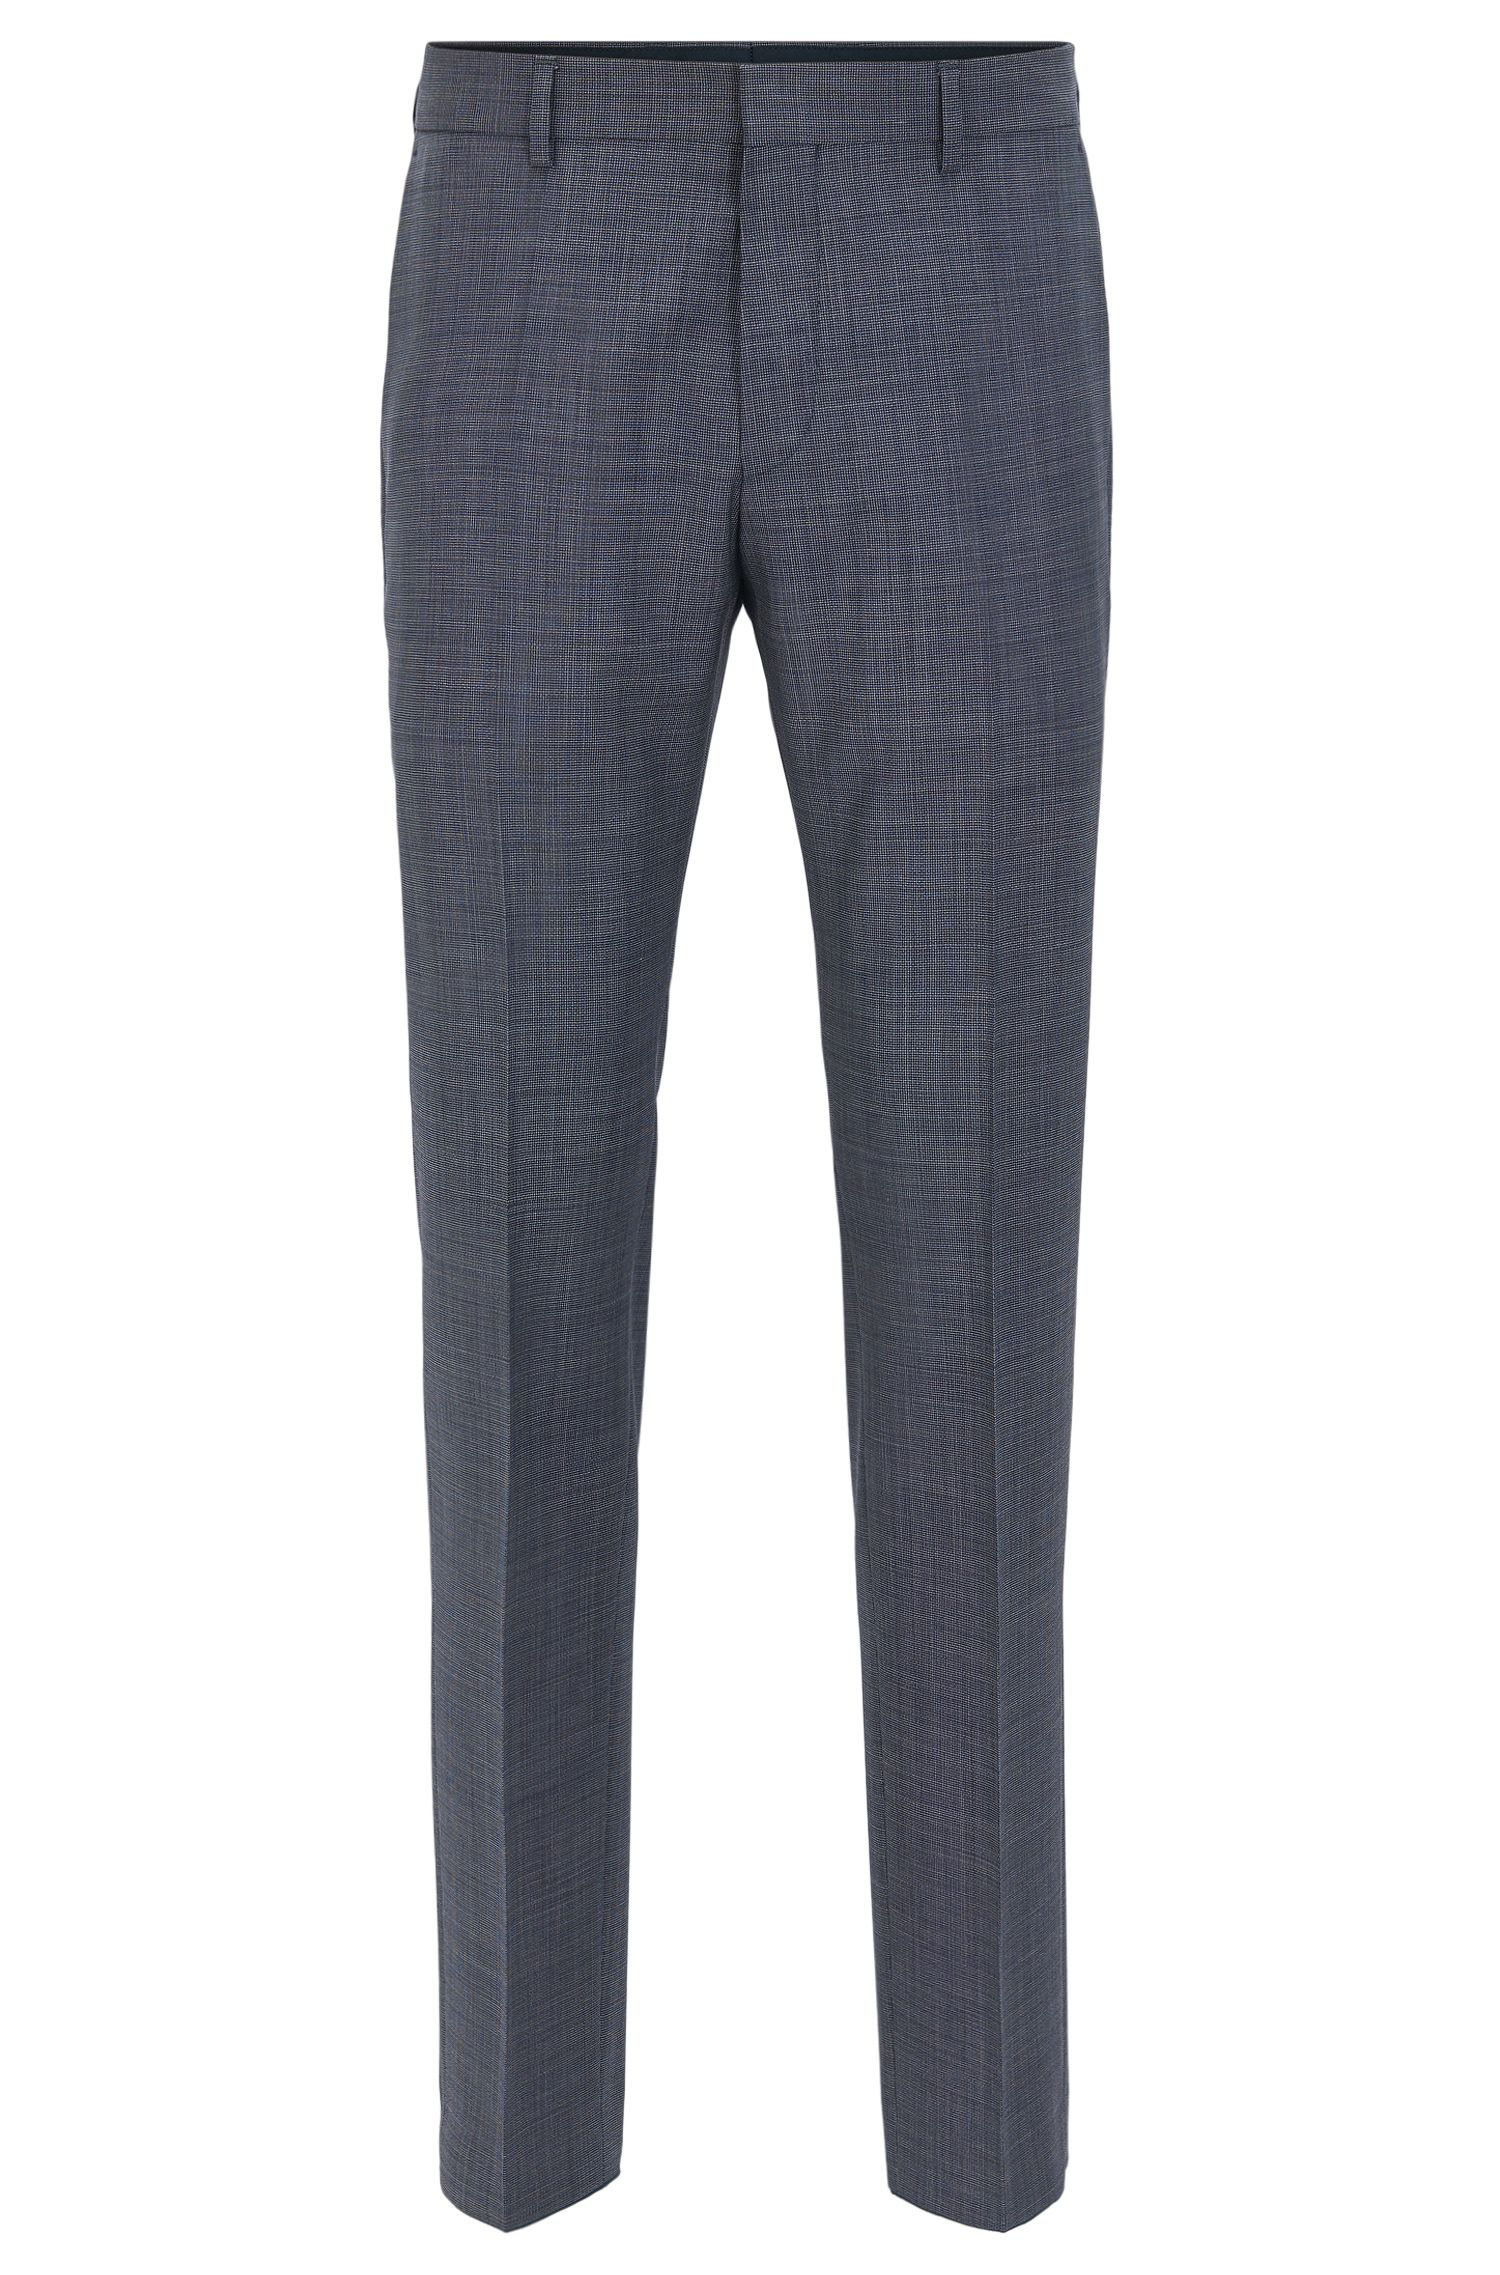 Virgin Wool Dress Pant, Slim Fit | Genesis, Turquoise